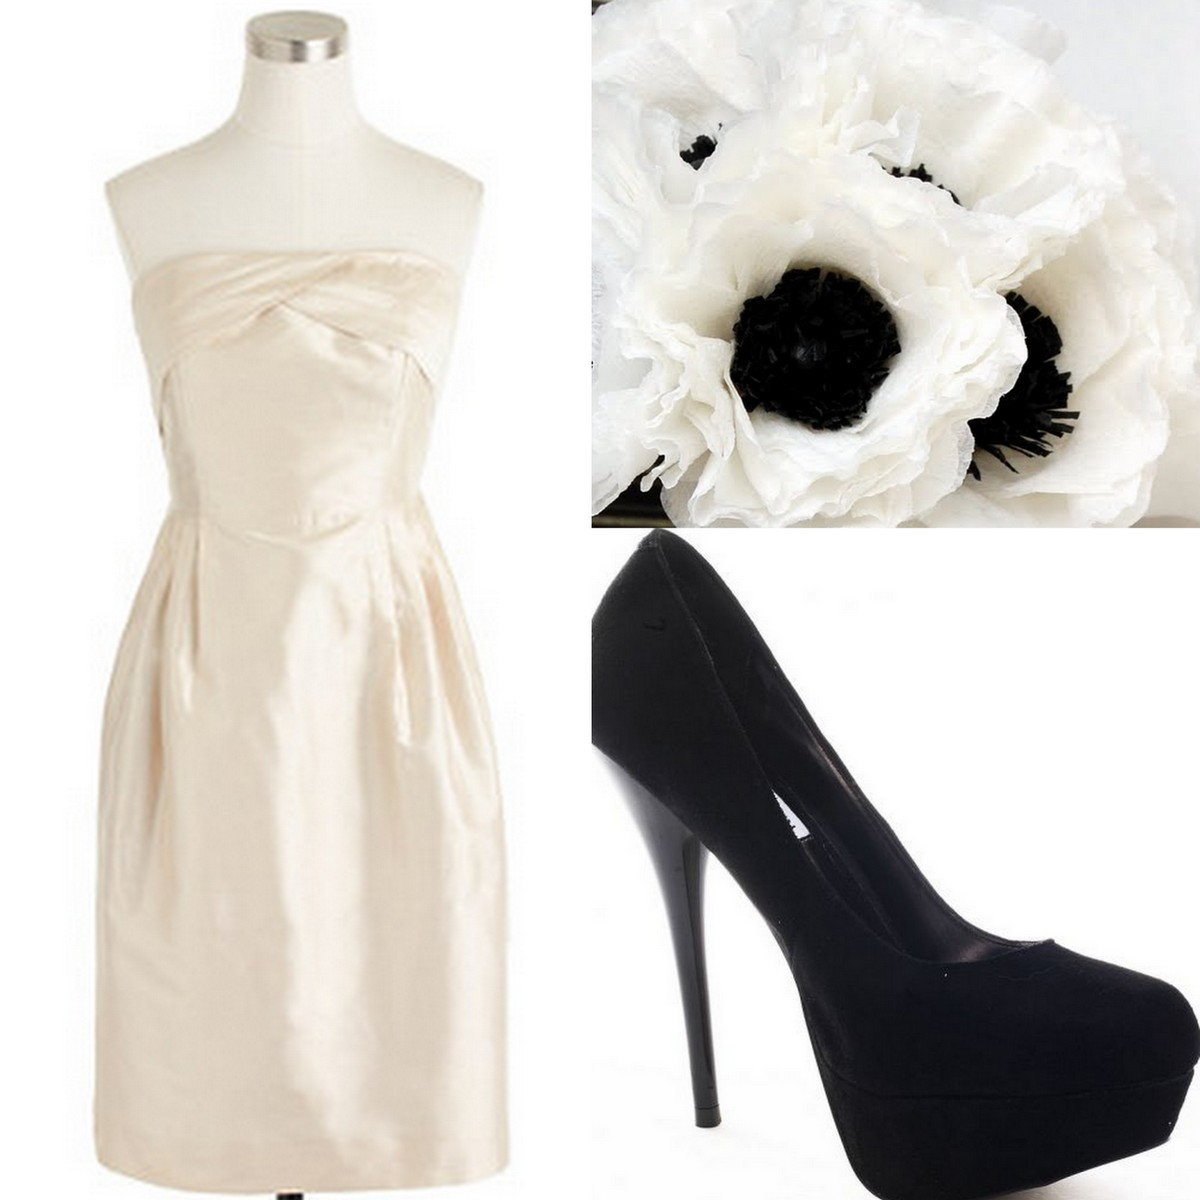 Style, Inspiration, & Design Beige Silk Duponi J.Crew Bridesmaid Dress with Black pumps & Anenome Bouquetl